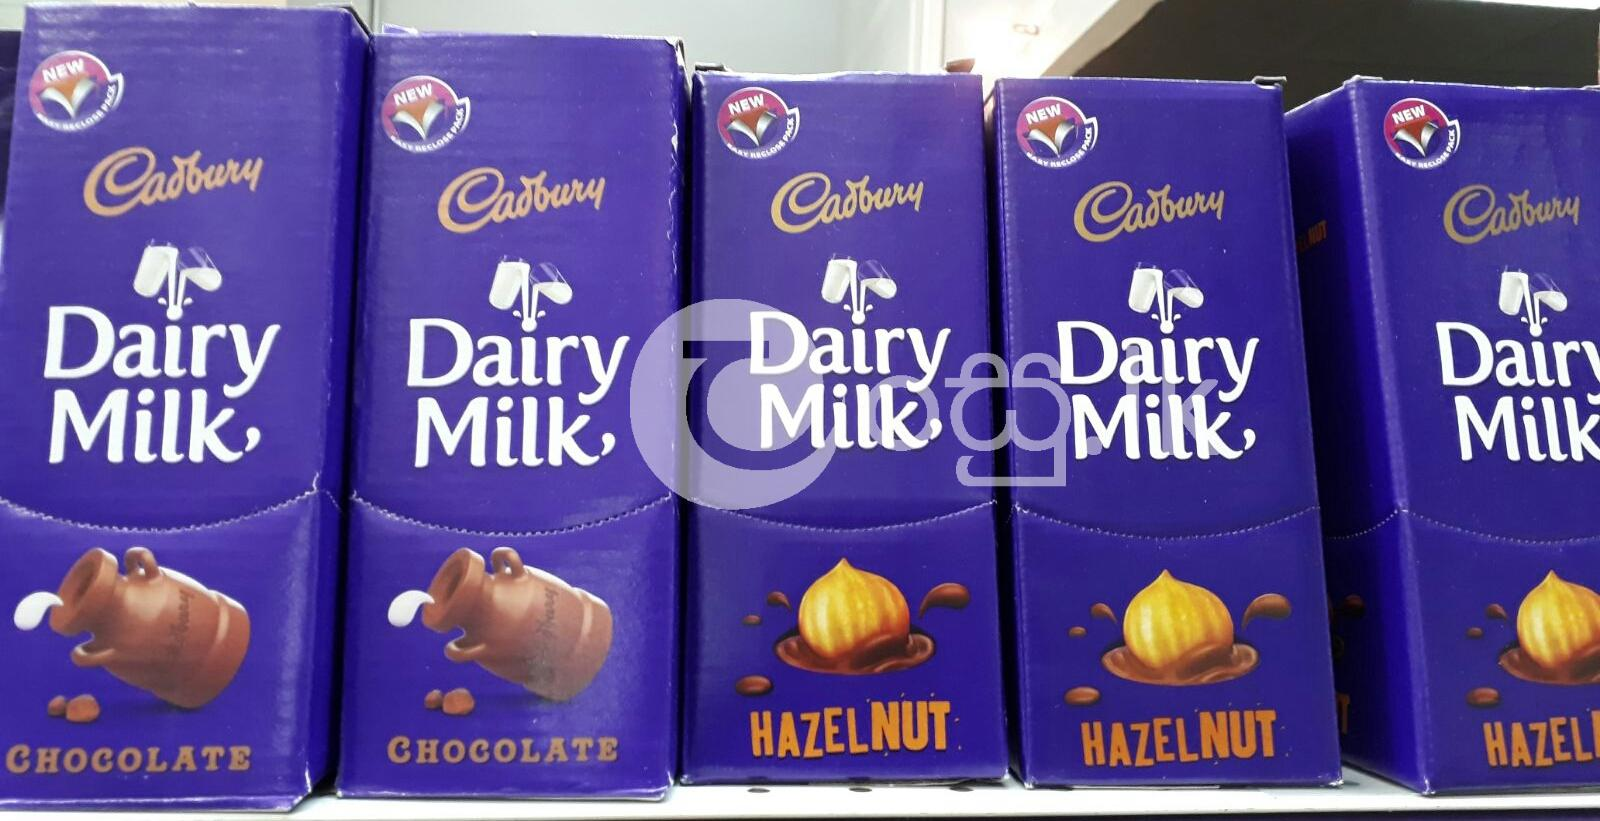 Cadbury Chocolate 90g in Ratmalana